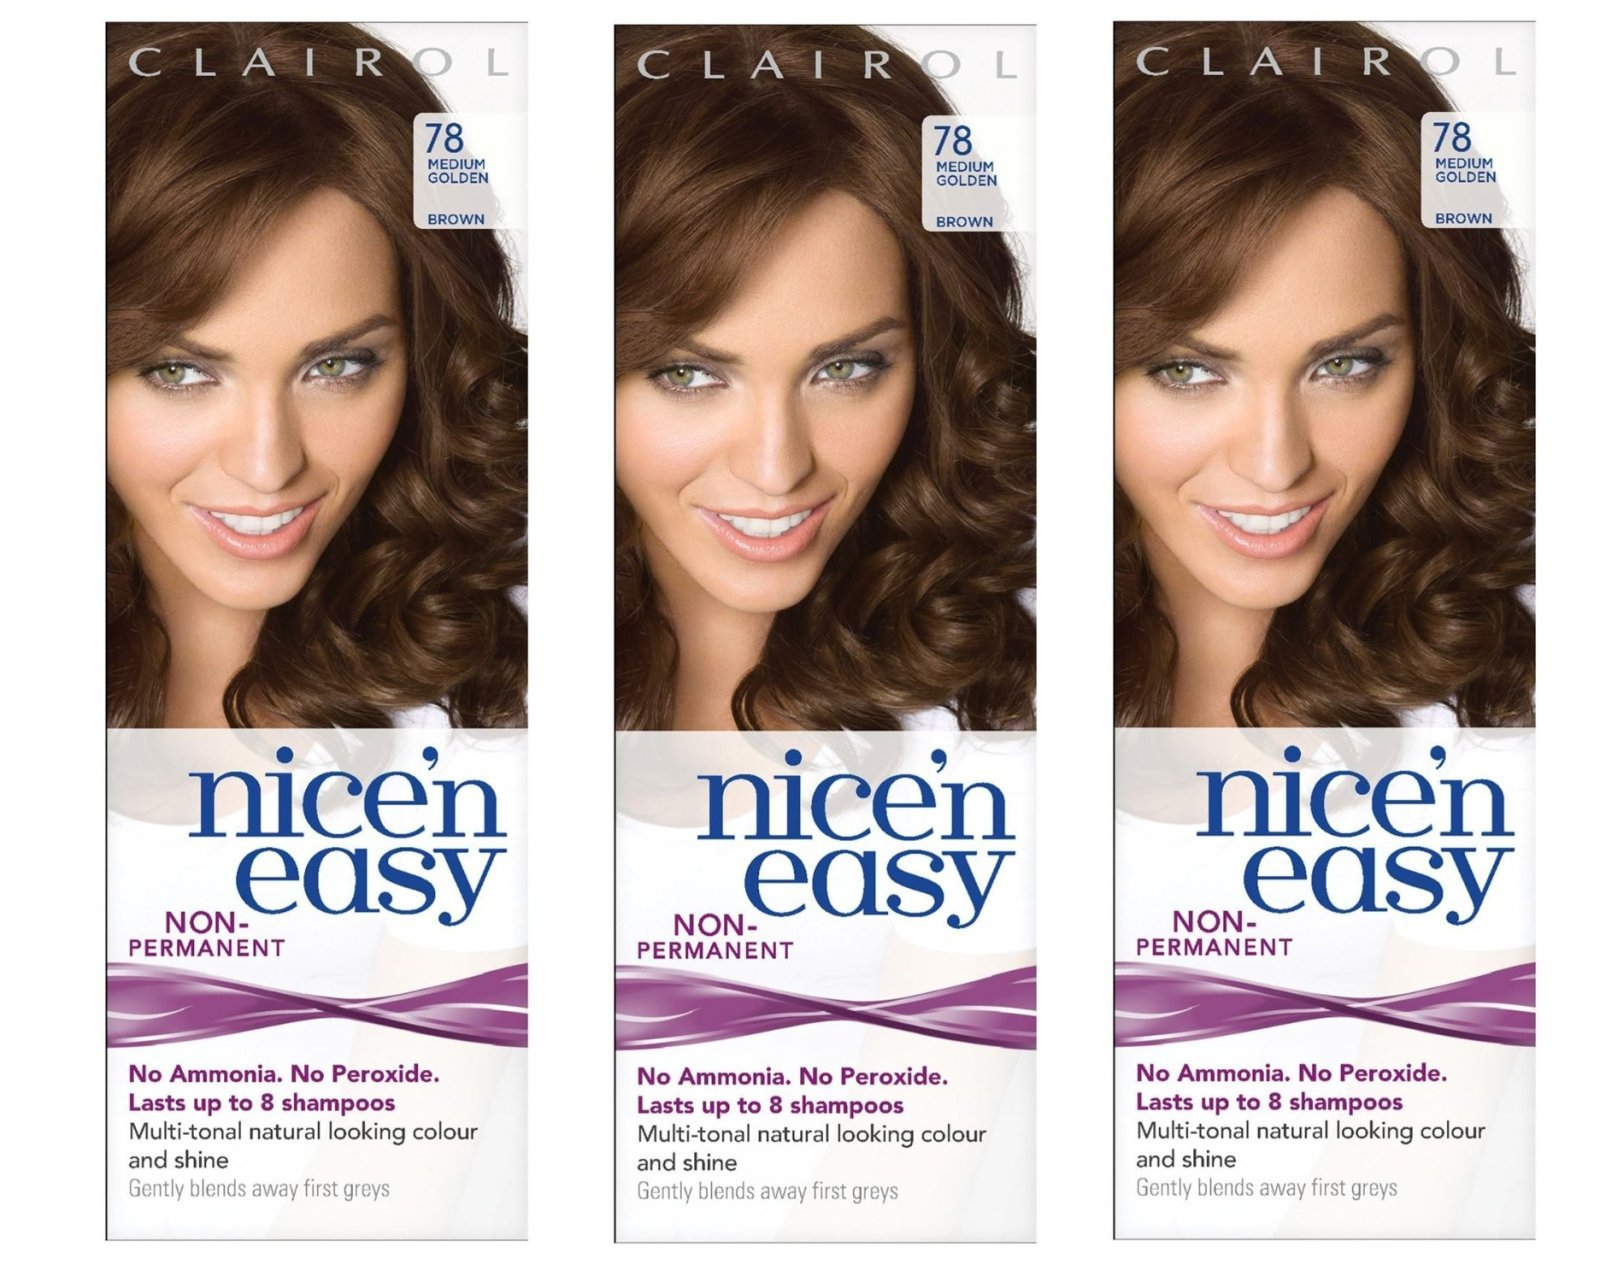 Clairol nice'n easy non permanent #78 medium gold, UK Loving Care (Pack of 3) + FREE Old Spice Deadlock Spiking Glue, Travel Size.84 Oz